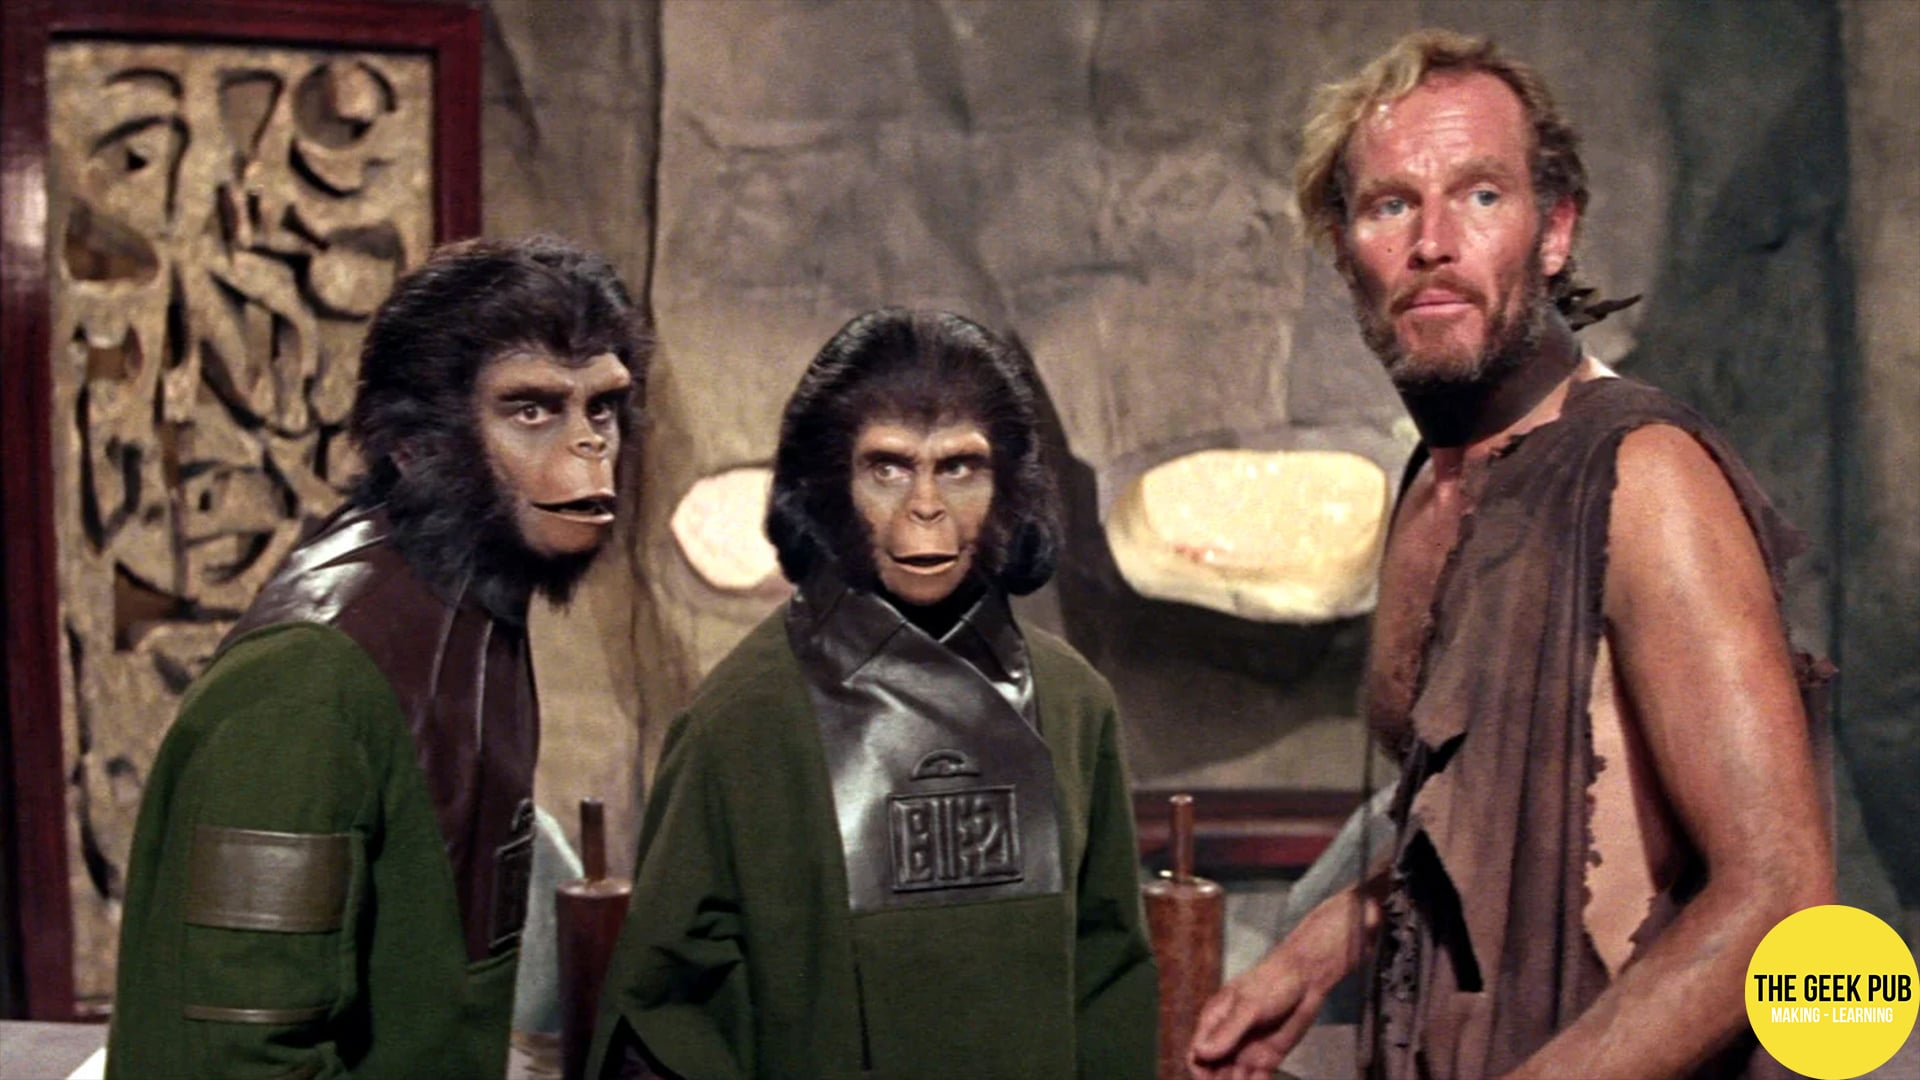 8) The Planet of the Apes (1968)